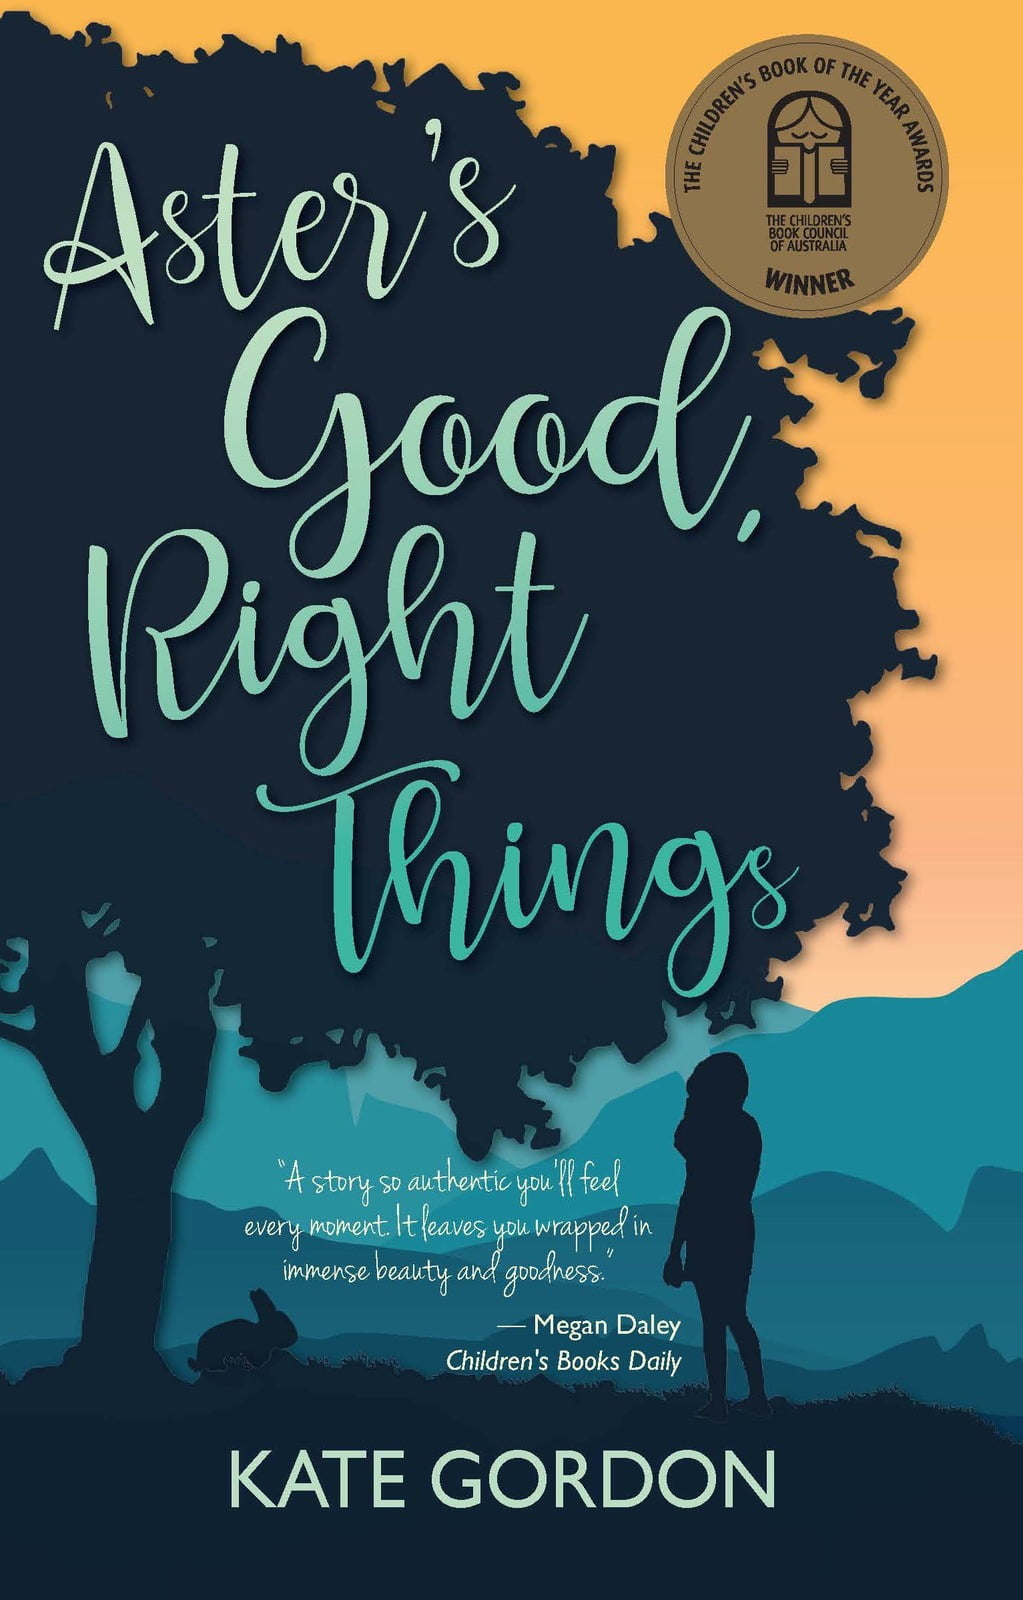 Sillhouette of a girl and rabbit under a tree at dusk on book cover for Aster's Good, Right Things